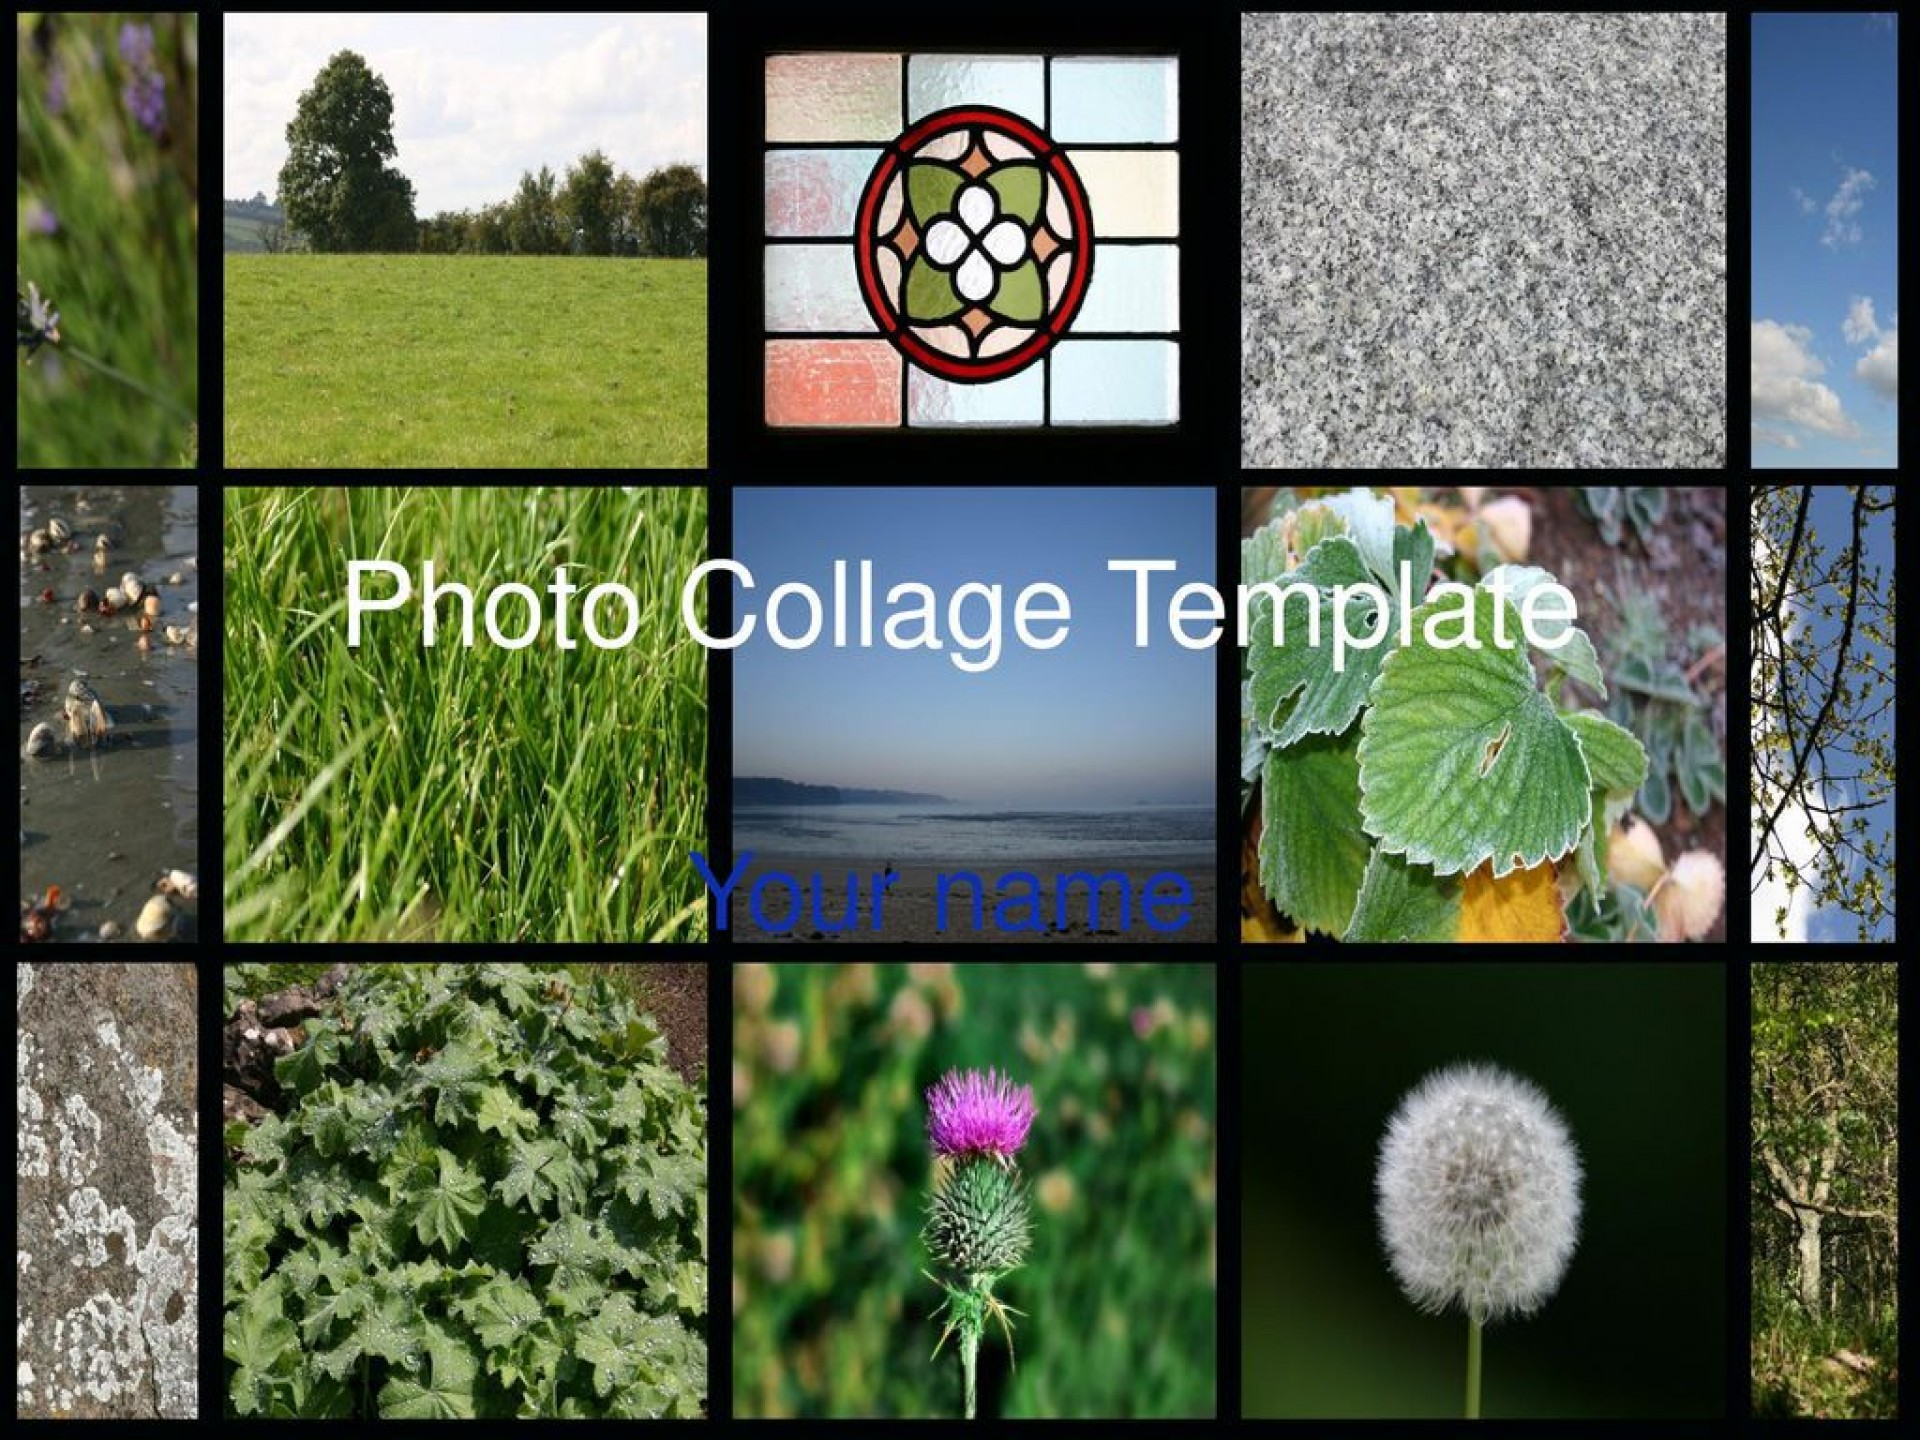 009 Singular Free Photo Collage Template For Powerpoint Image 1920